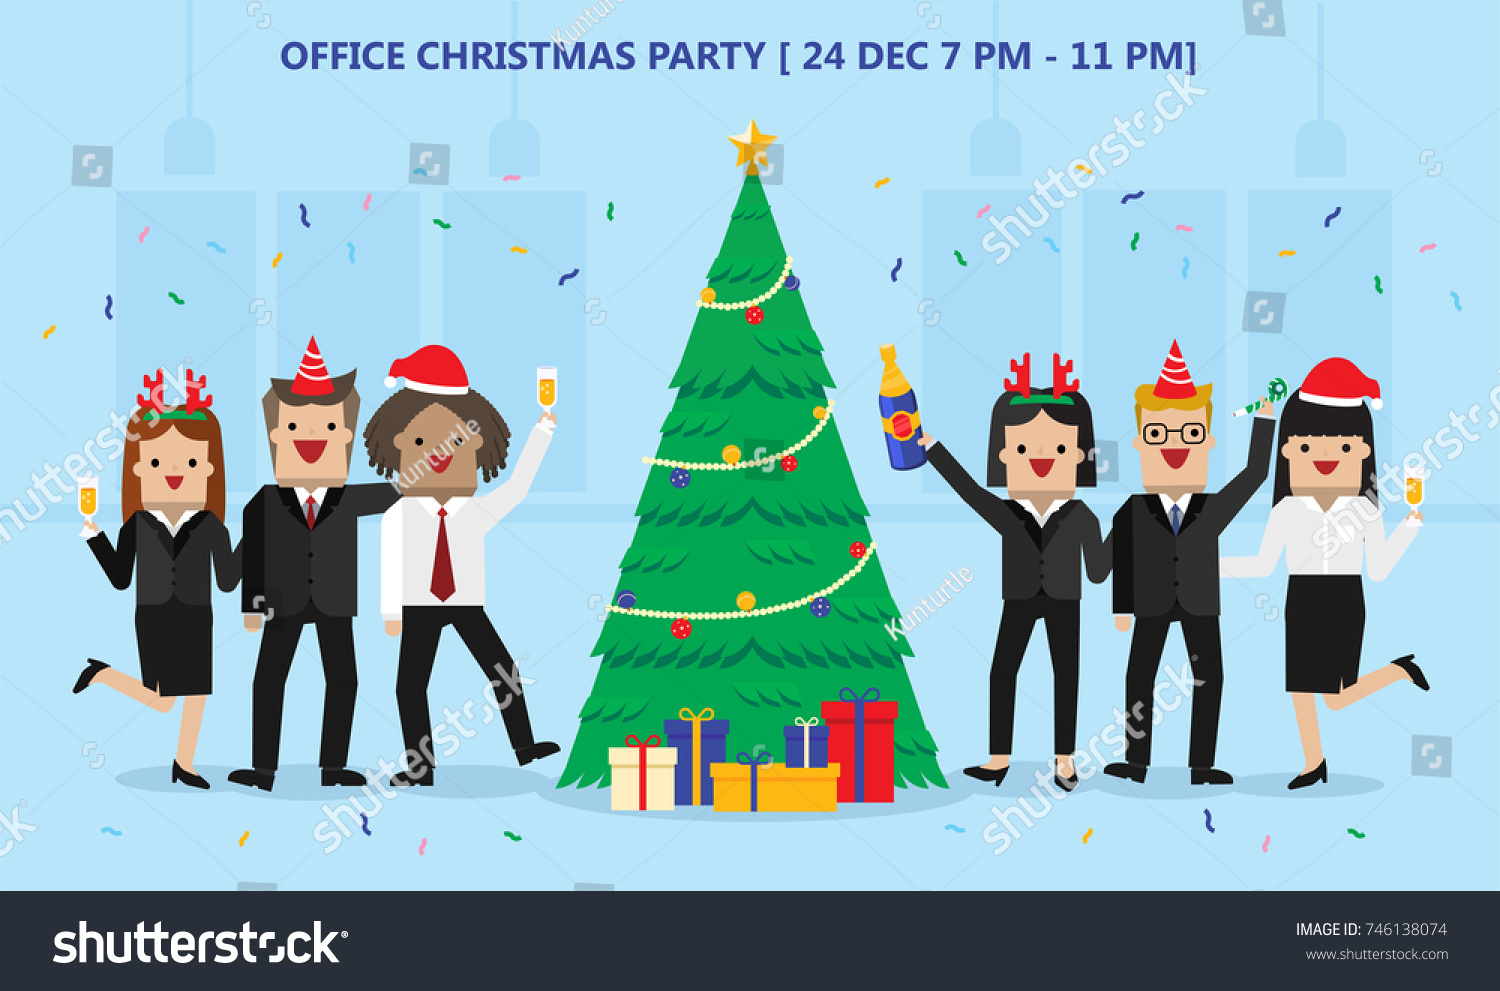 Illustration Vector Office Christmas Party Gift Stock Vector ...